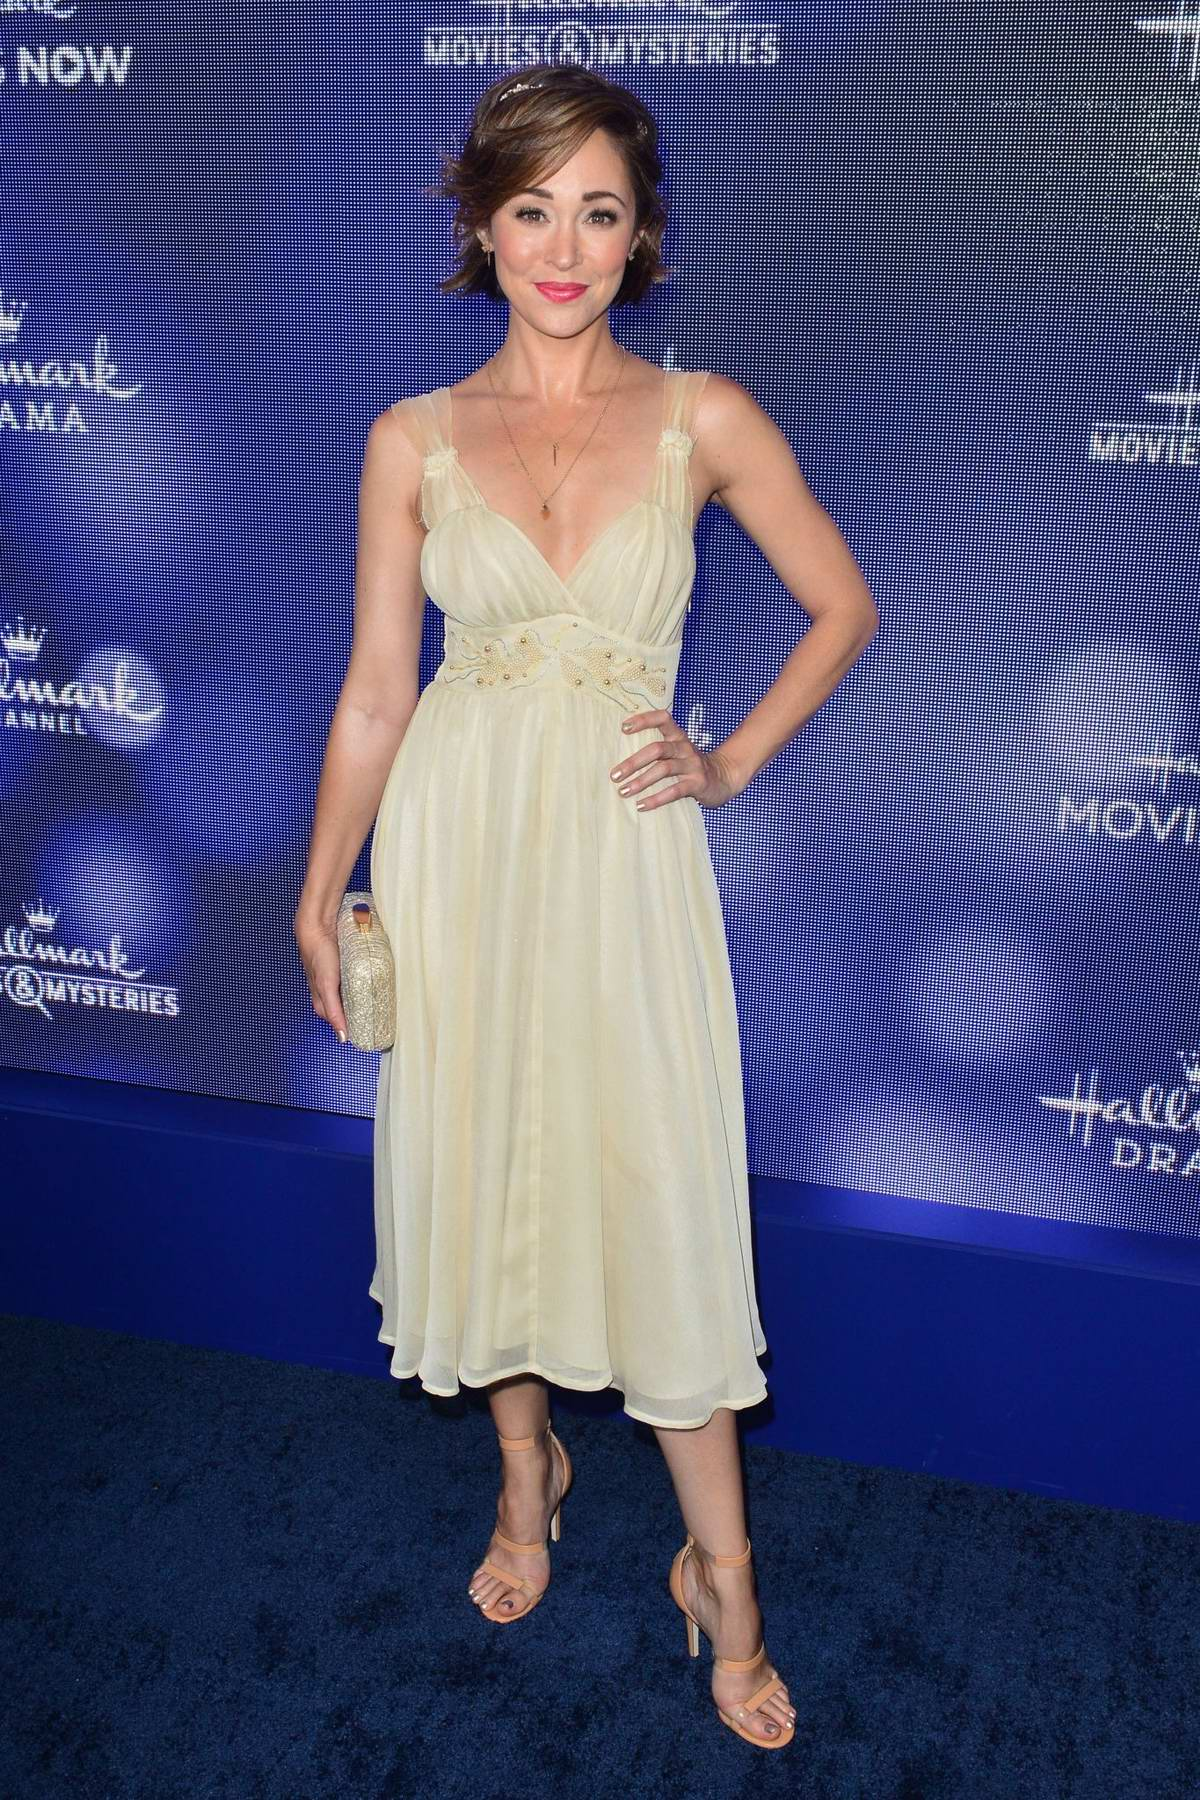 Autumn Reeser attends Hallmark Movies & Mysteries Summer TCA Press Tour Event in Beverly Hills, Los Angeles